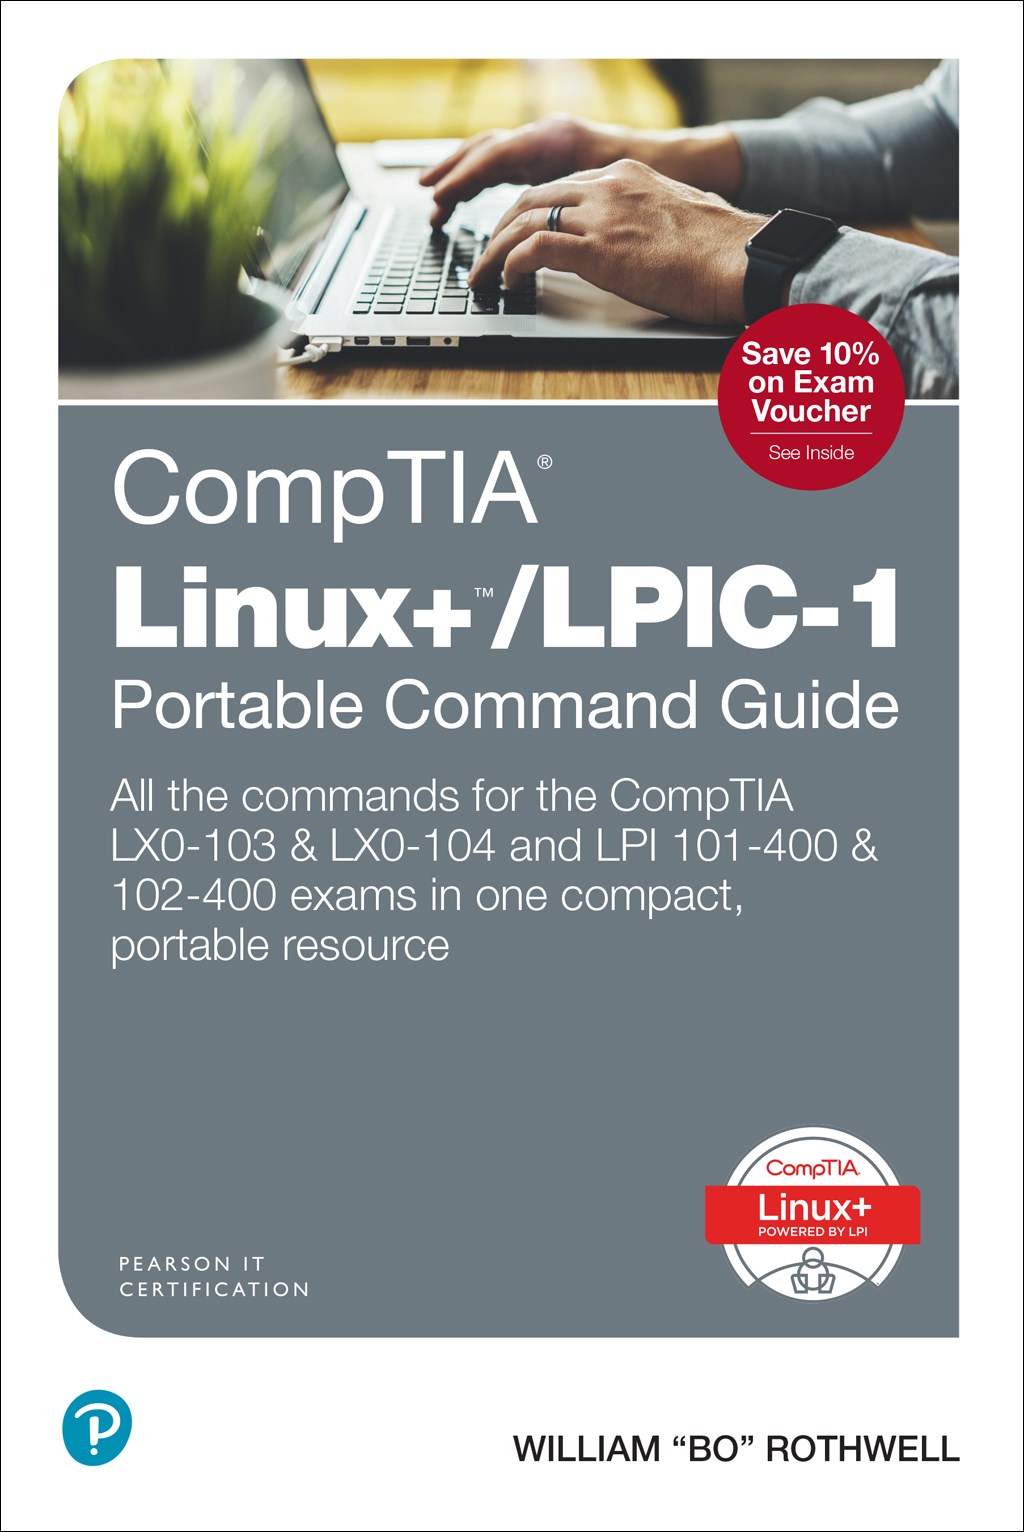 CompTIA Linux+/LPIC-1 Portable Command Guide: All the commands for the CompTIA LX0-103 & LX0-104 and LPI 101-400 & 102-400 exams in one compact, portable resource